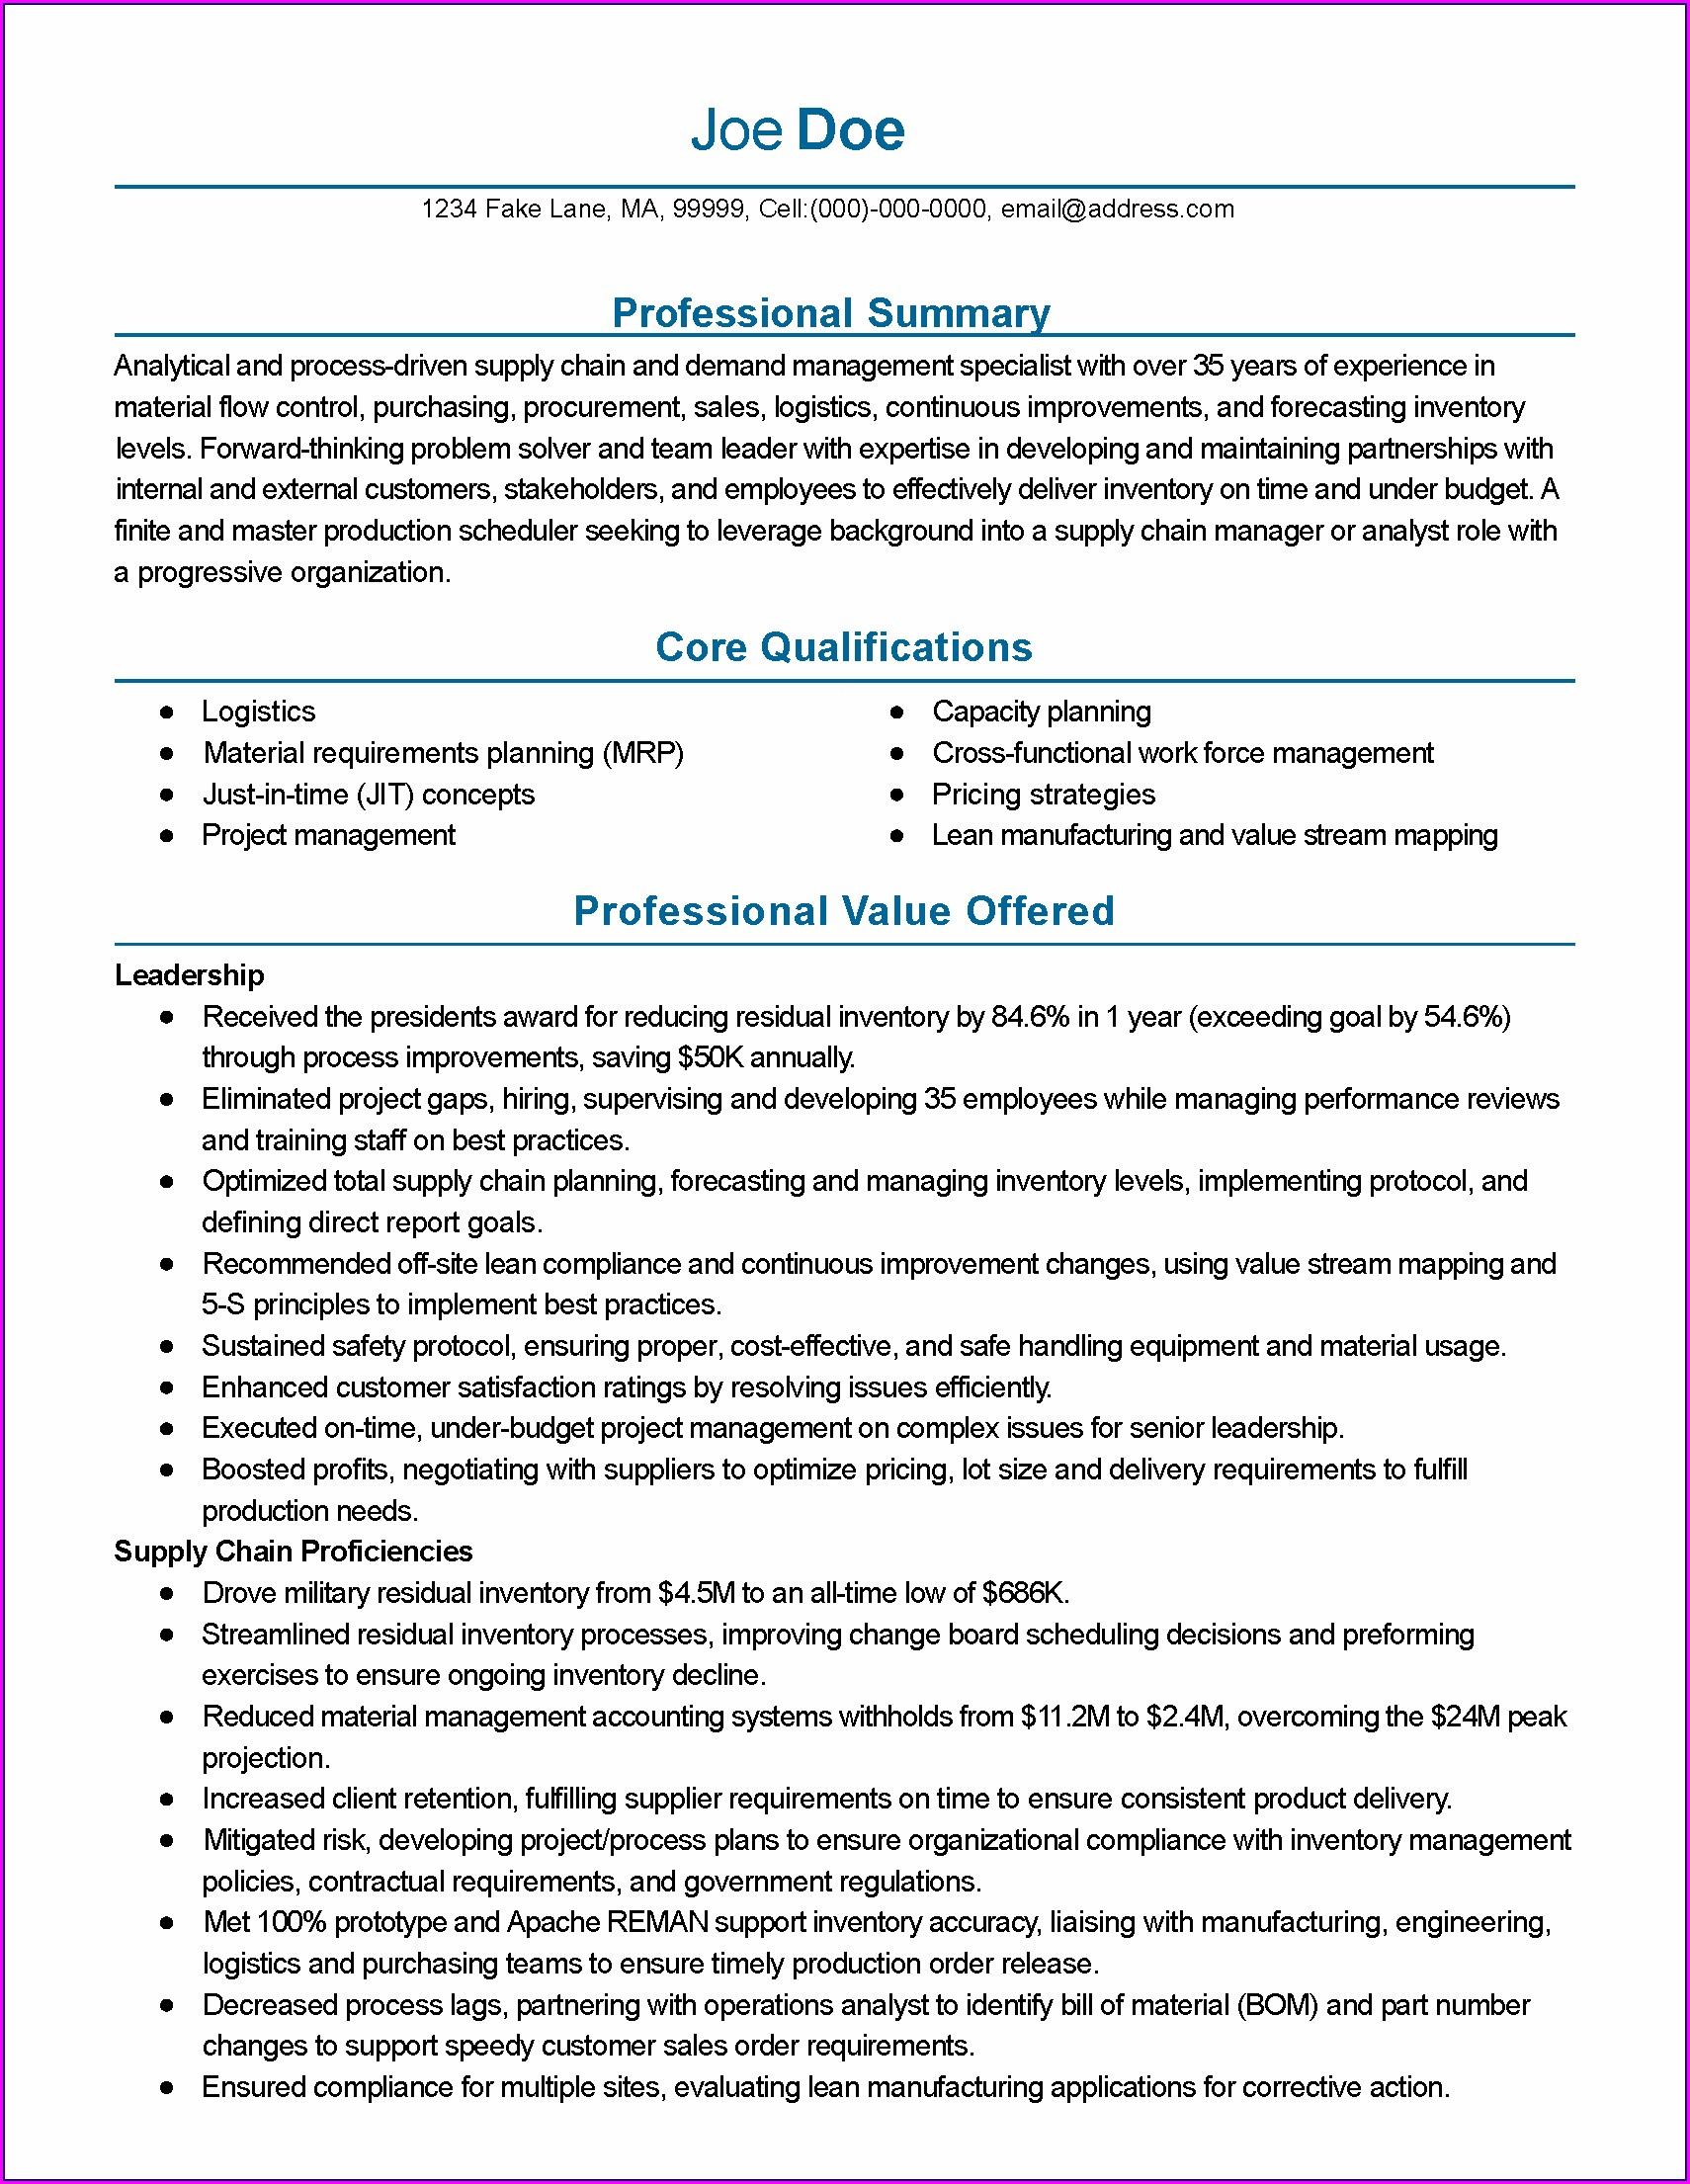 Resume Format For Scm Executive